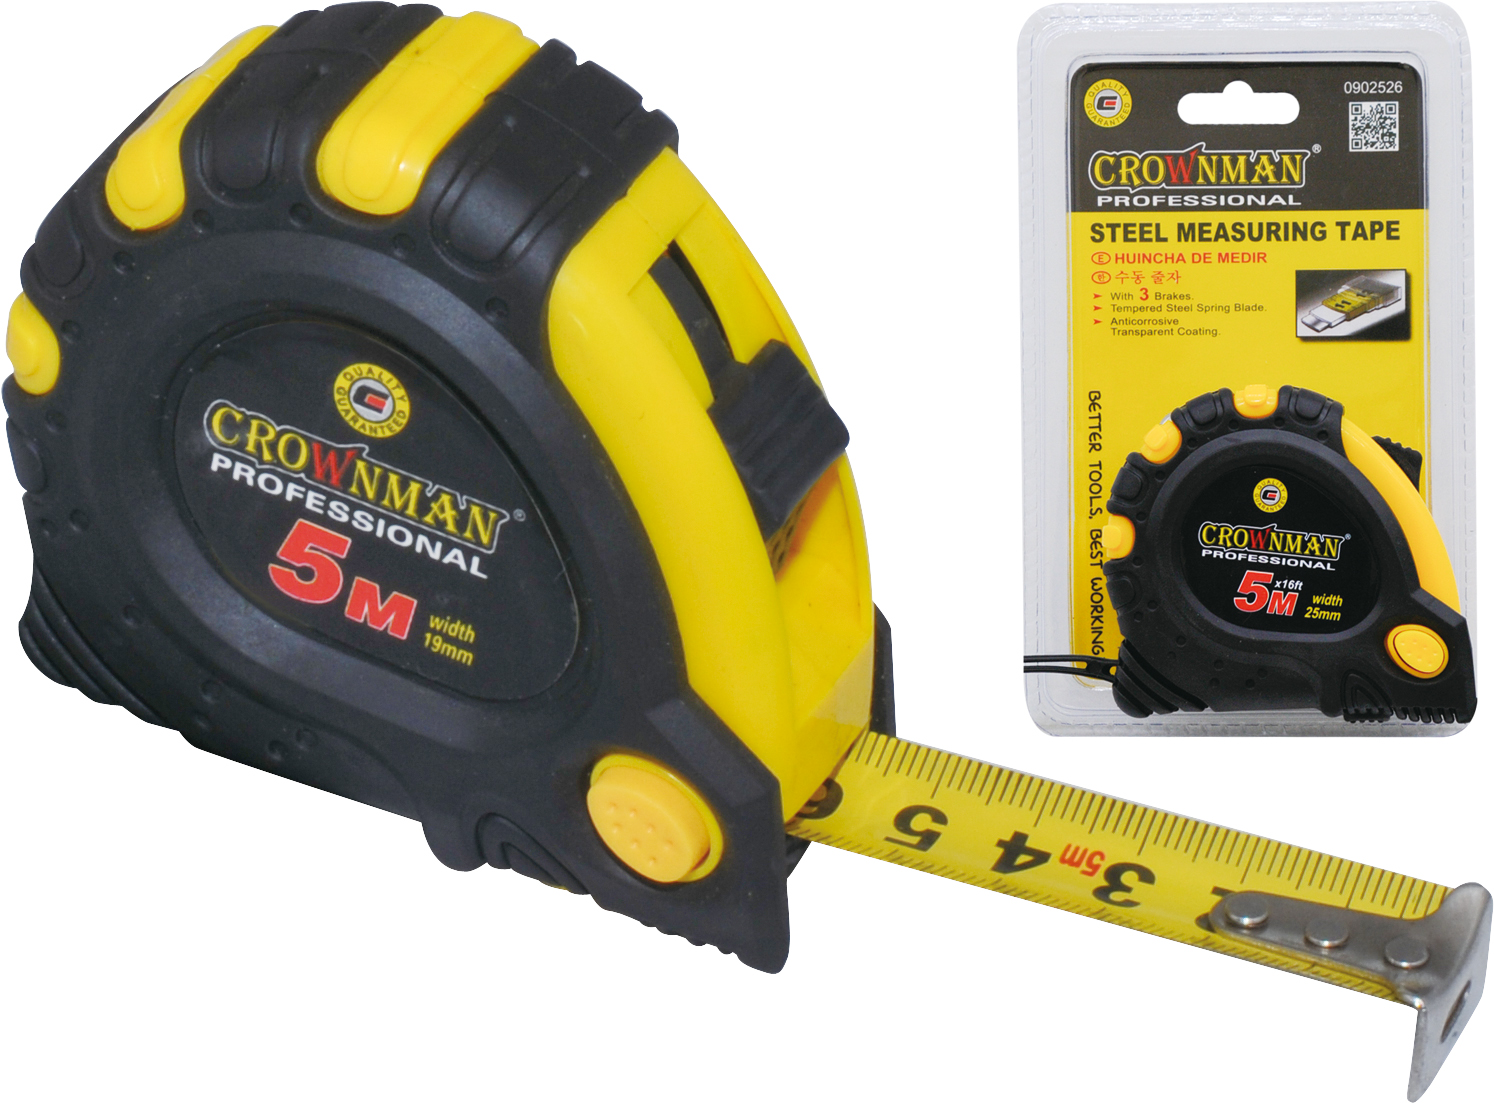 Crownman 5mx19mm Steel Measuring Tape ABS Case with TPR Coating【YJ0902525】